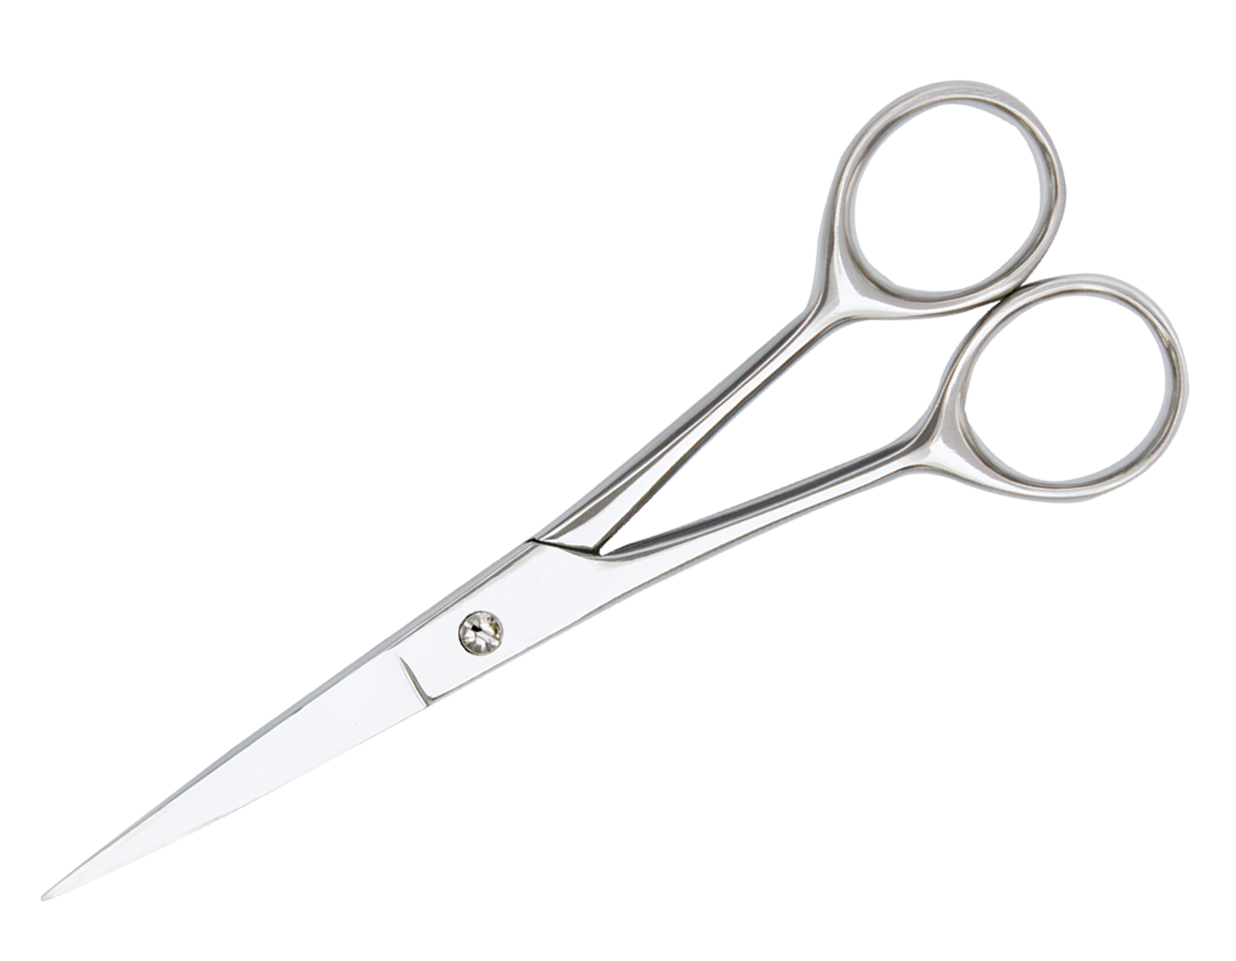 Shears clipart hairdressing scissors. Png images image